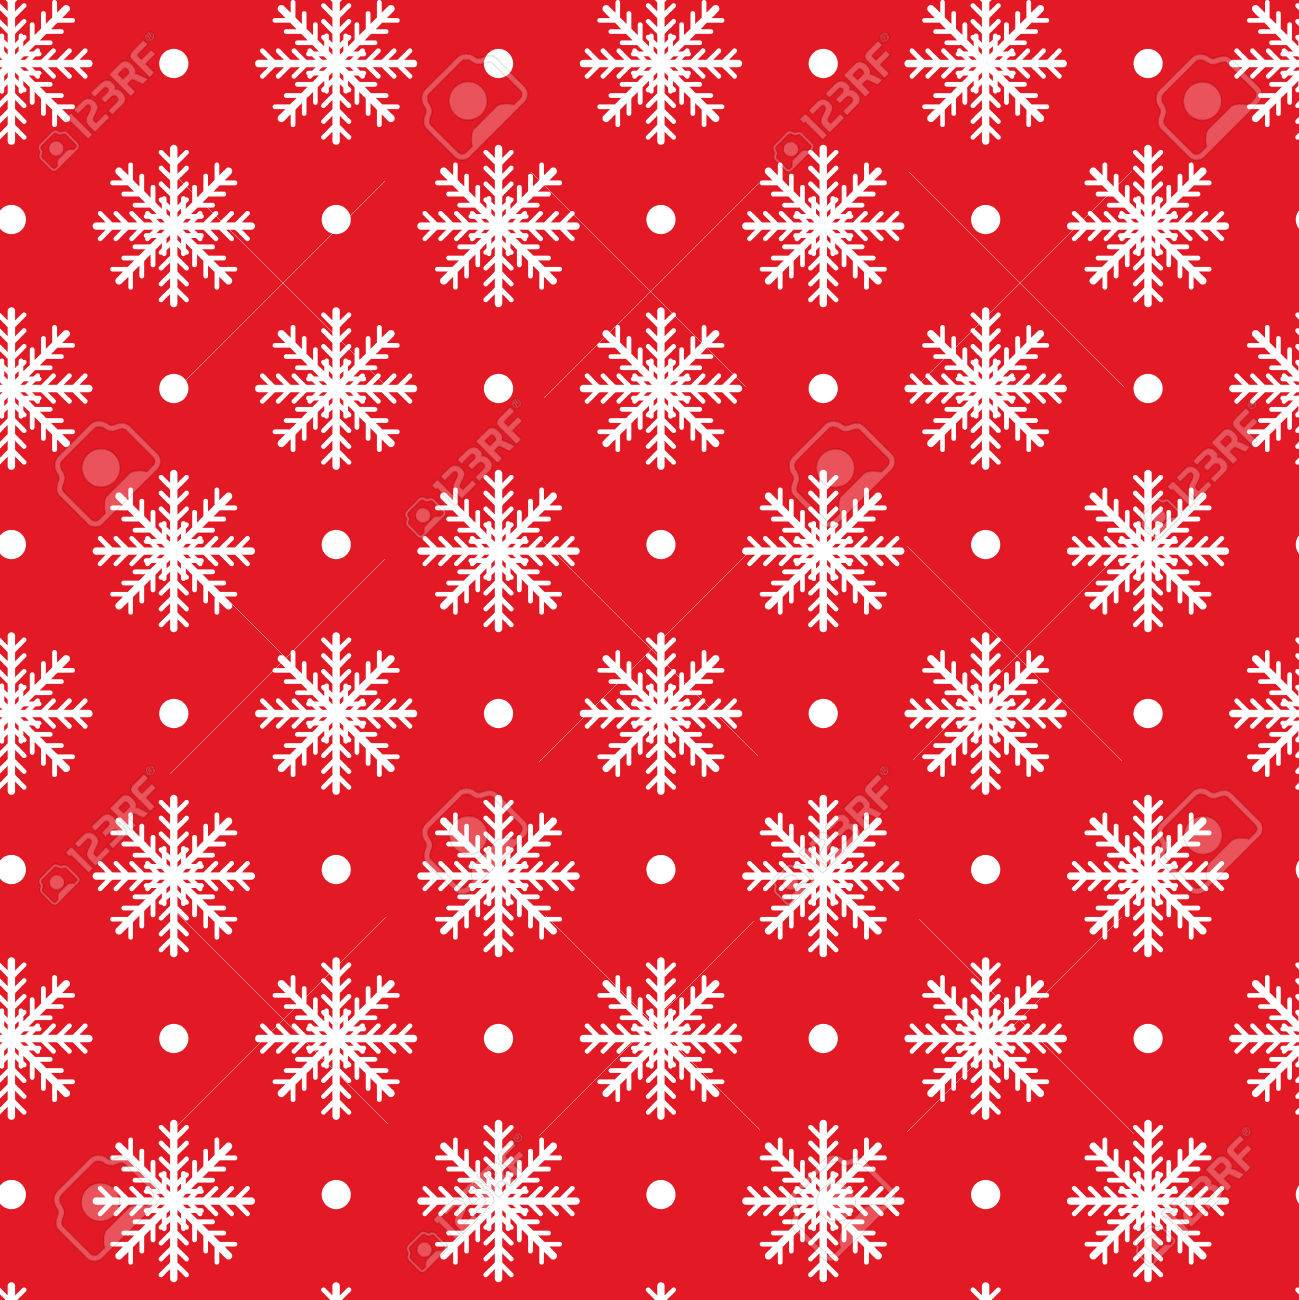 new year theme background with snowflakes can be copied without any